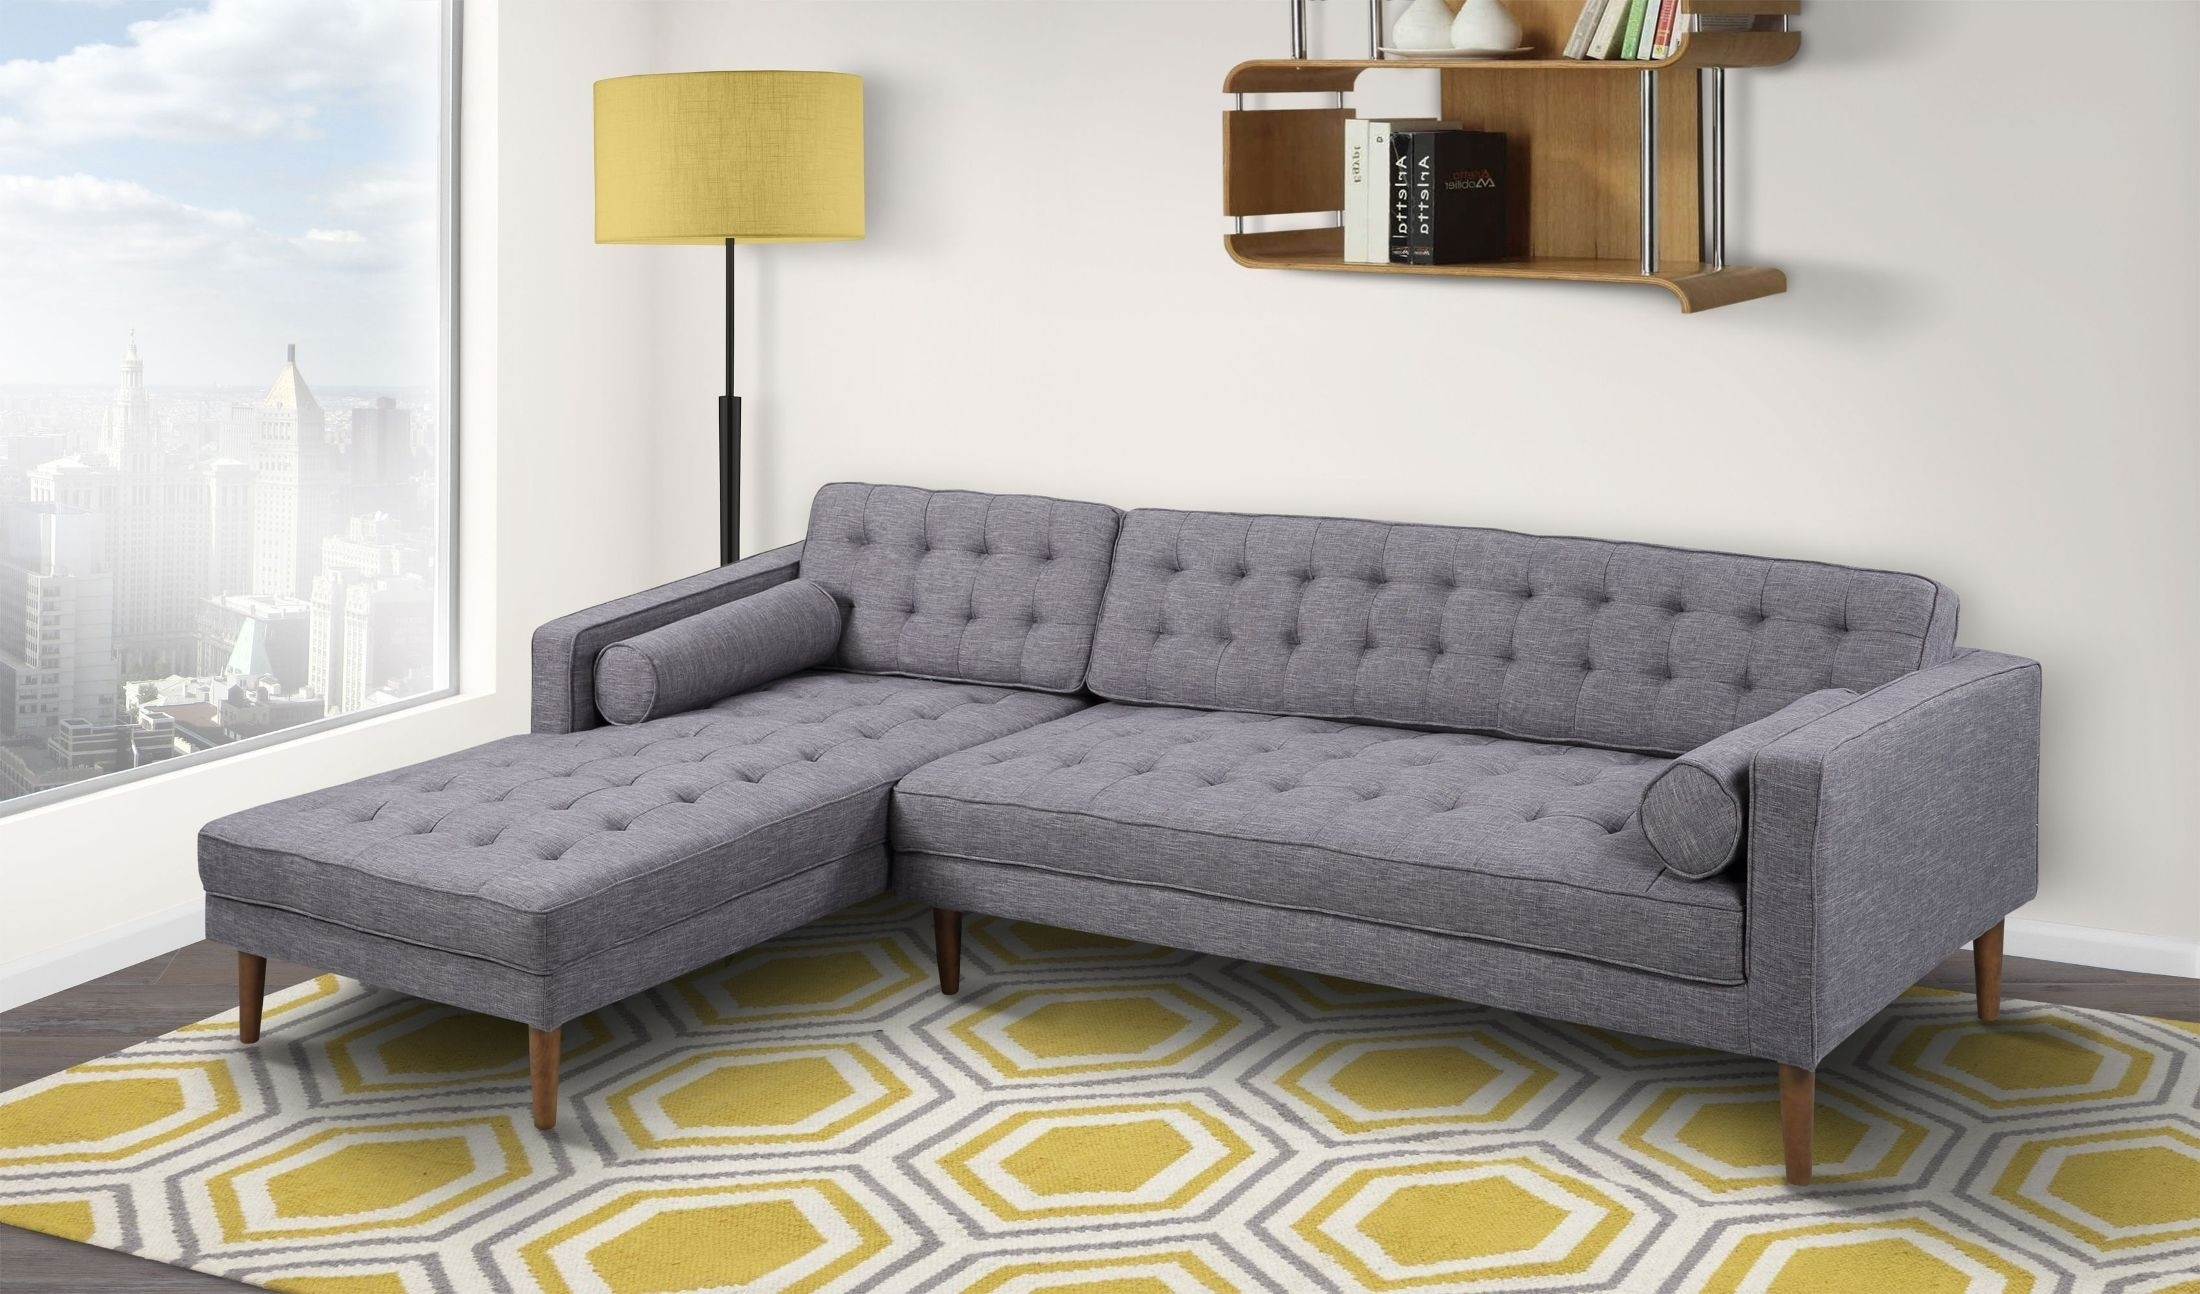 Element Dark Gray Linen Laf Sectional From Armen Living | Coleman With Regard To Delano Smoke 3 Piece Sectionals (View 21 of 25)